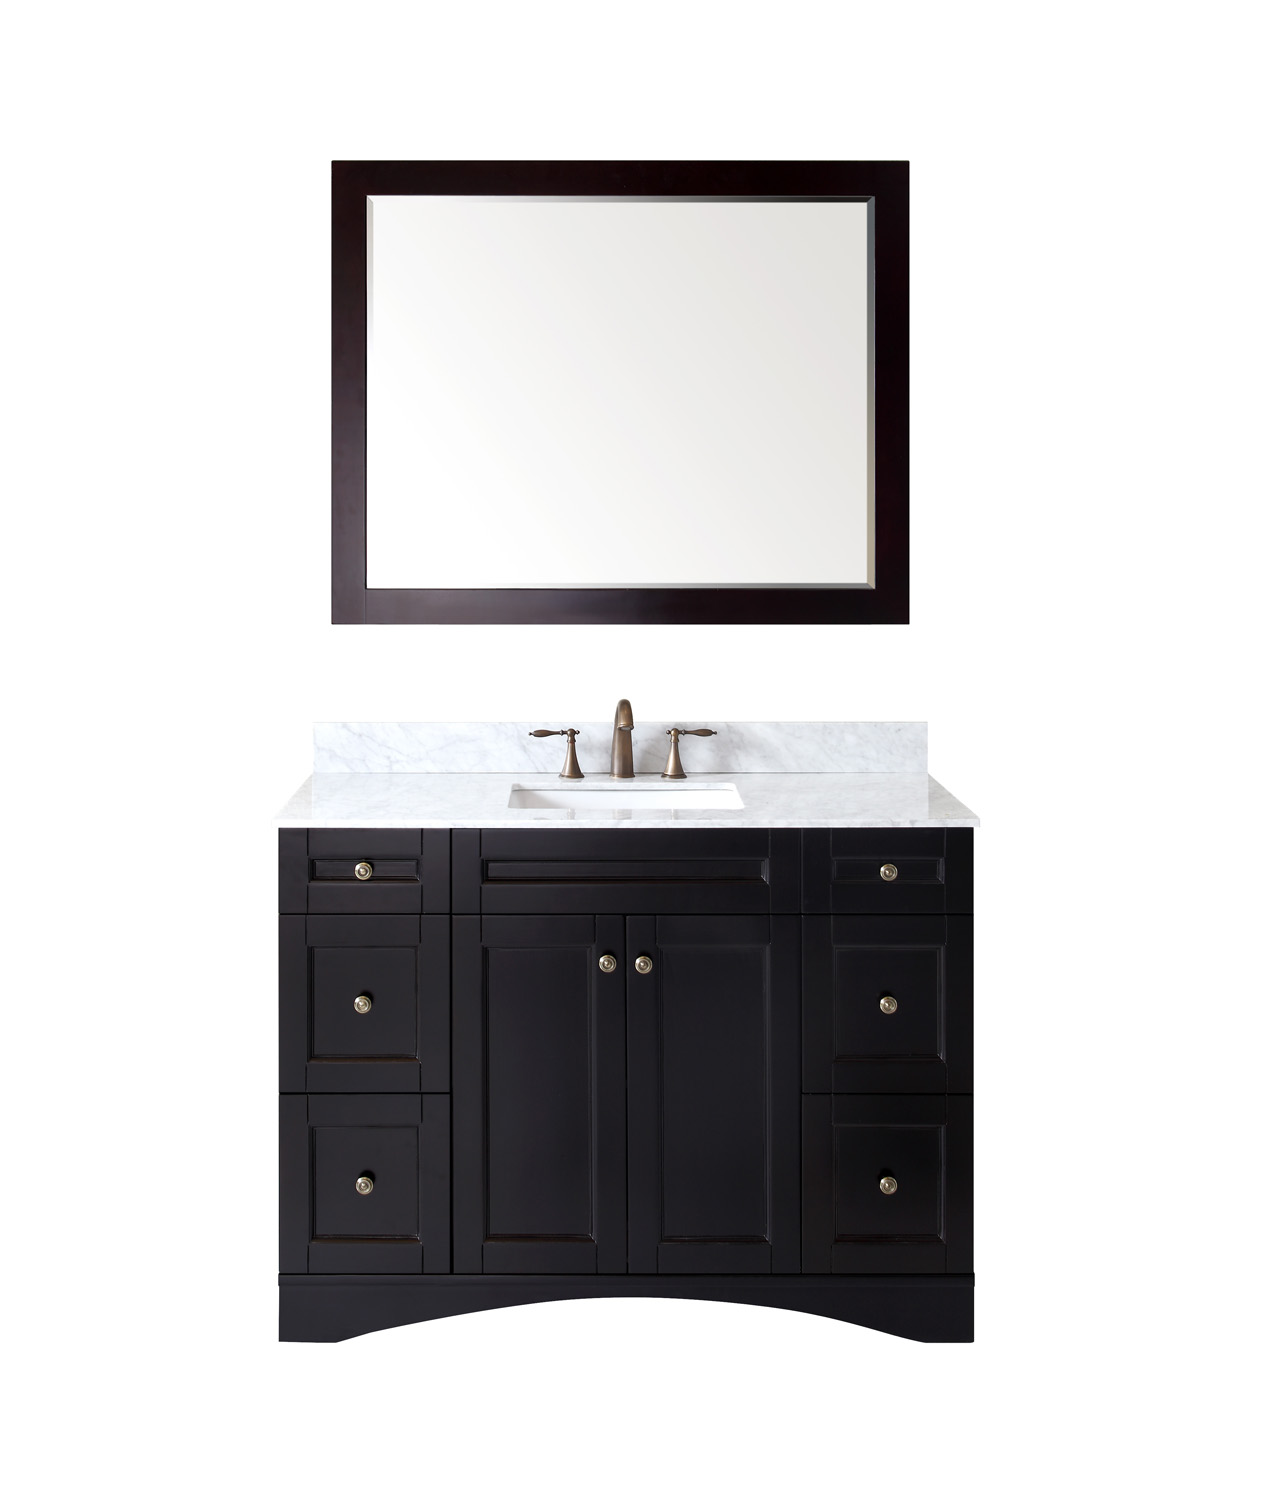 "48"" Single Bath Vanity in Espresso Finish with Top, Sink and Mirror Options"